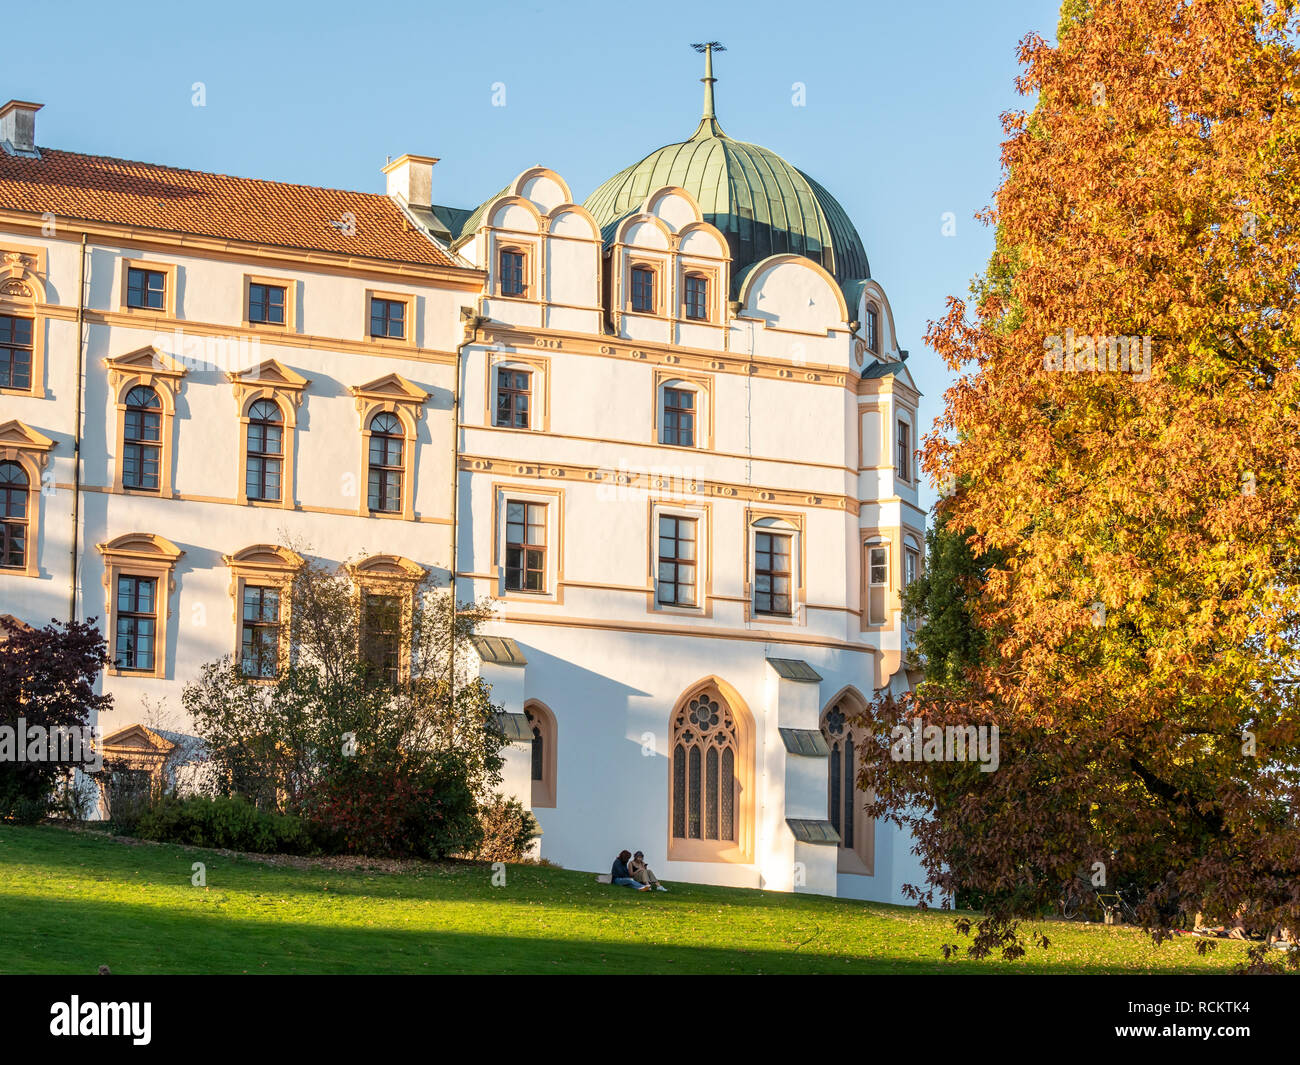 Celle Castle, Celler Schloss, autumn foliage, Celle, Germany - Stock Image